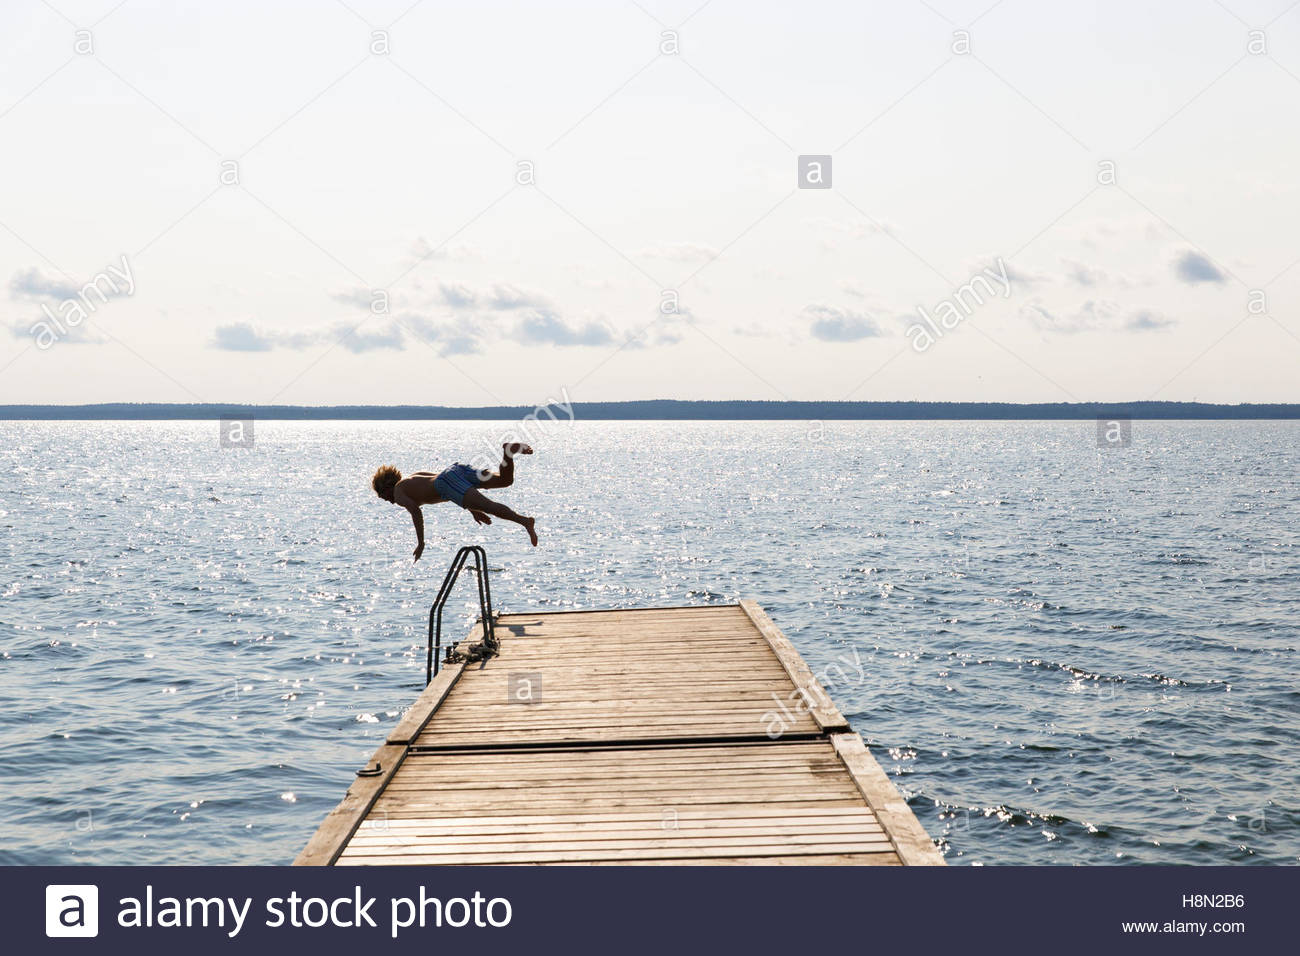 Man jumping off jetty into lake - Stock Image